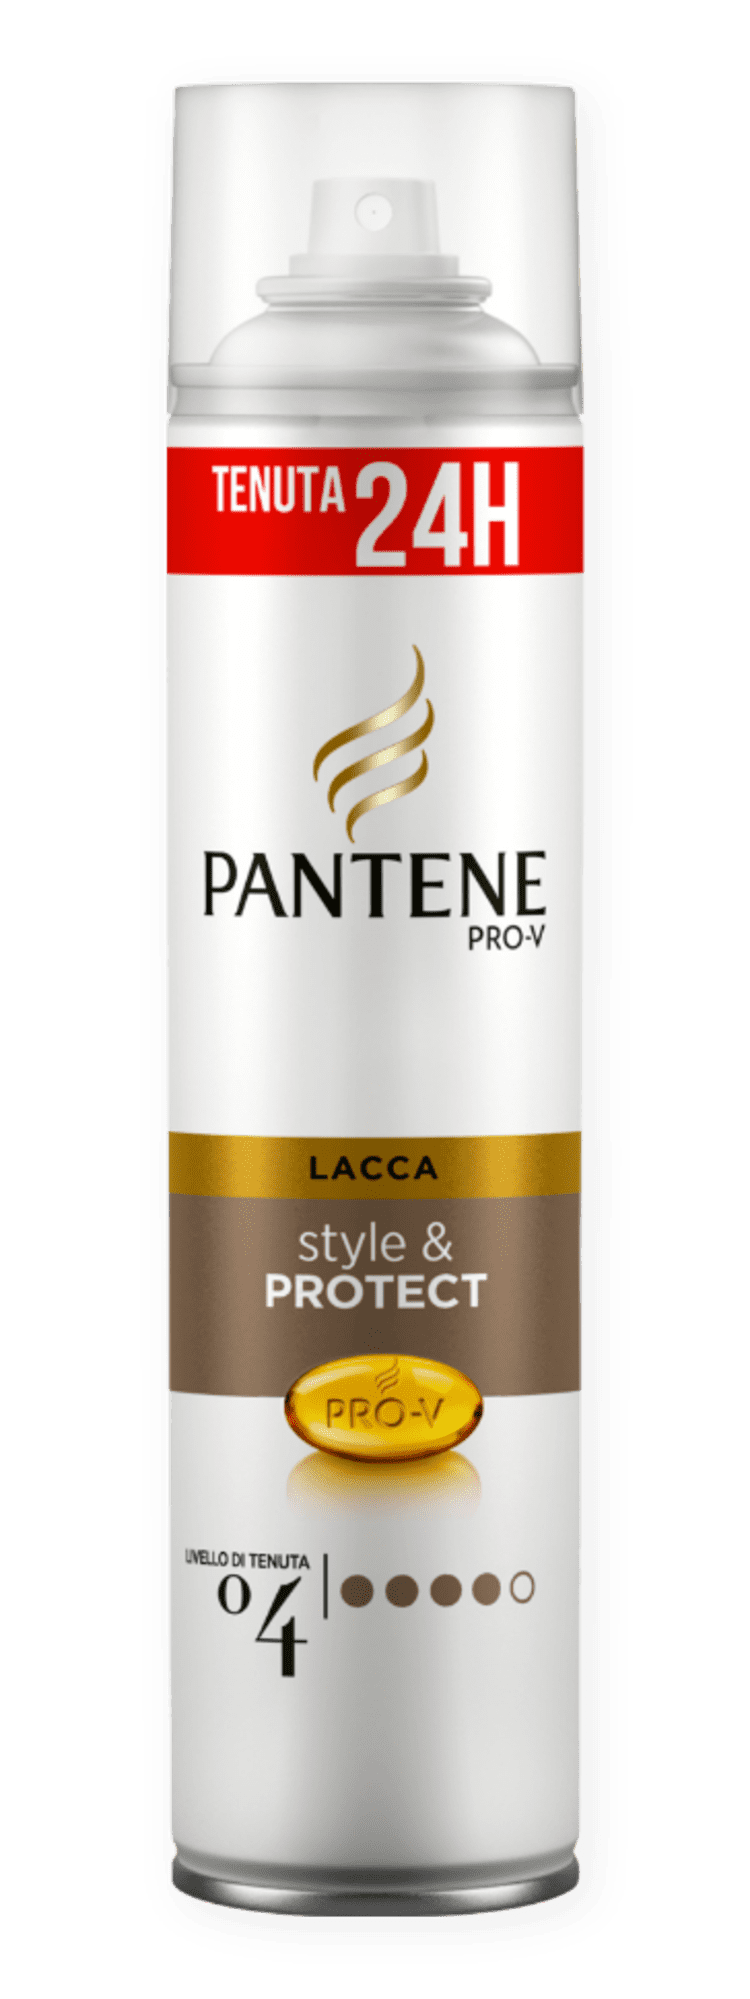 Pantene Pro-V Lacca Style & Protect